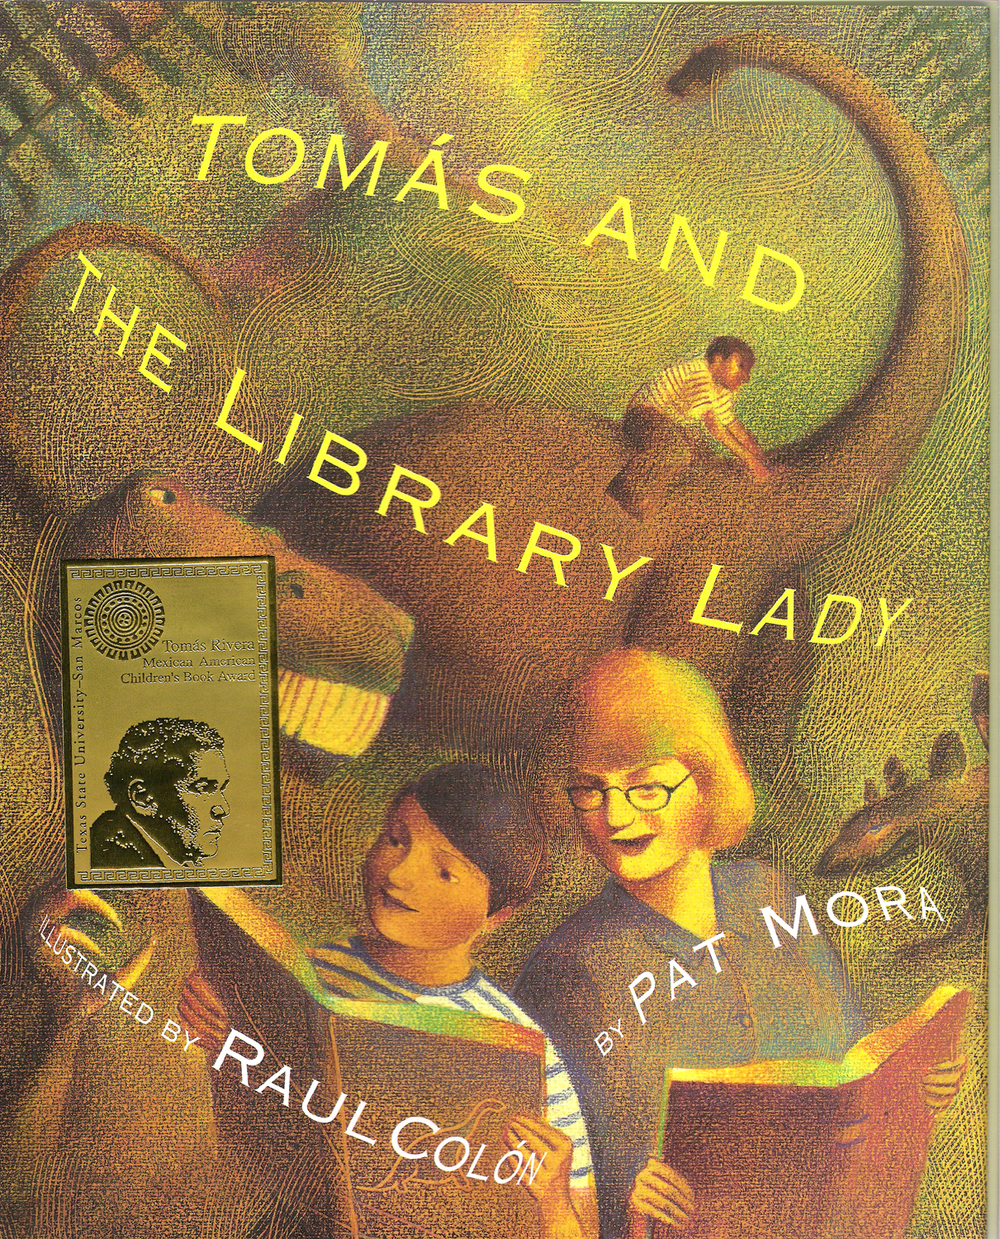 Tomas and the Library Lady in OutlooK-12 Magazine